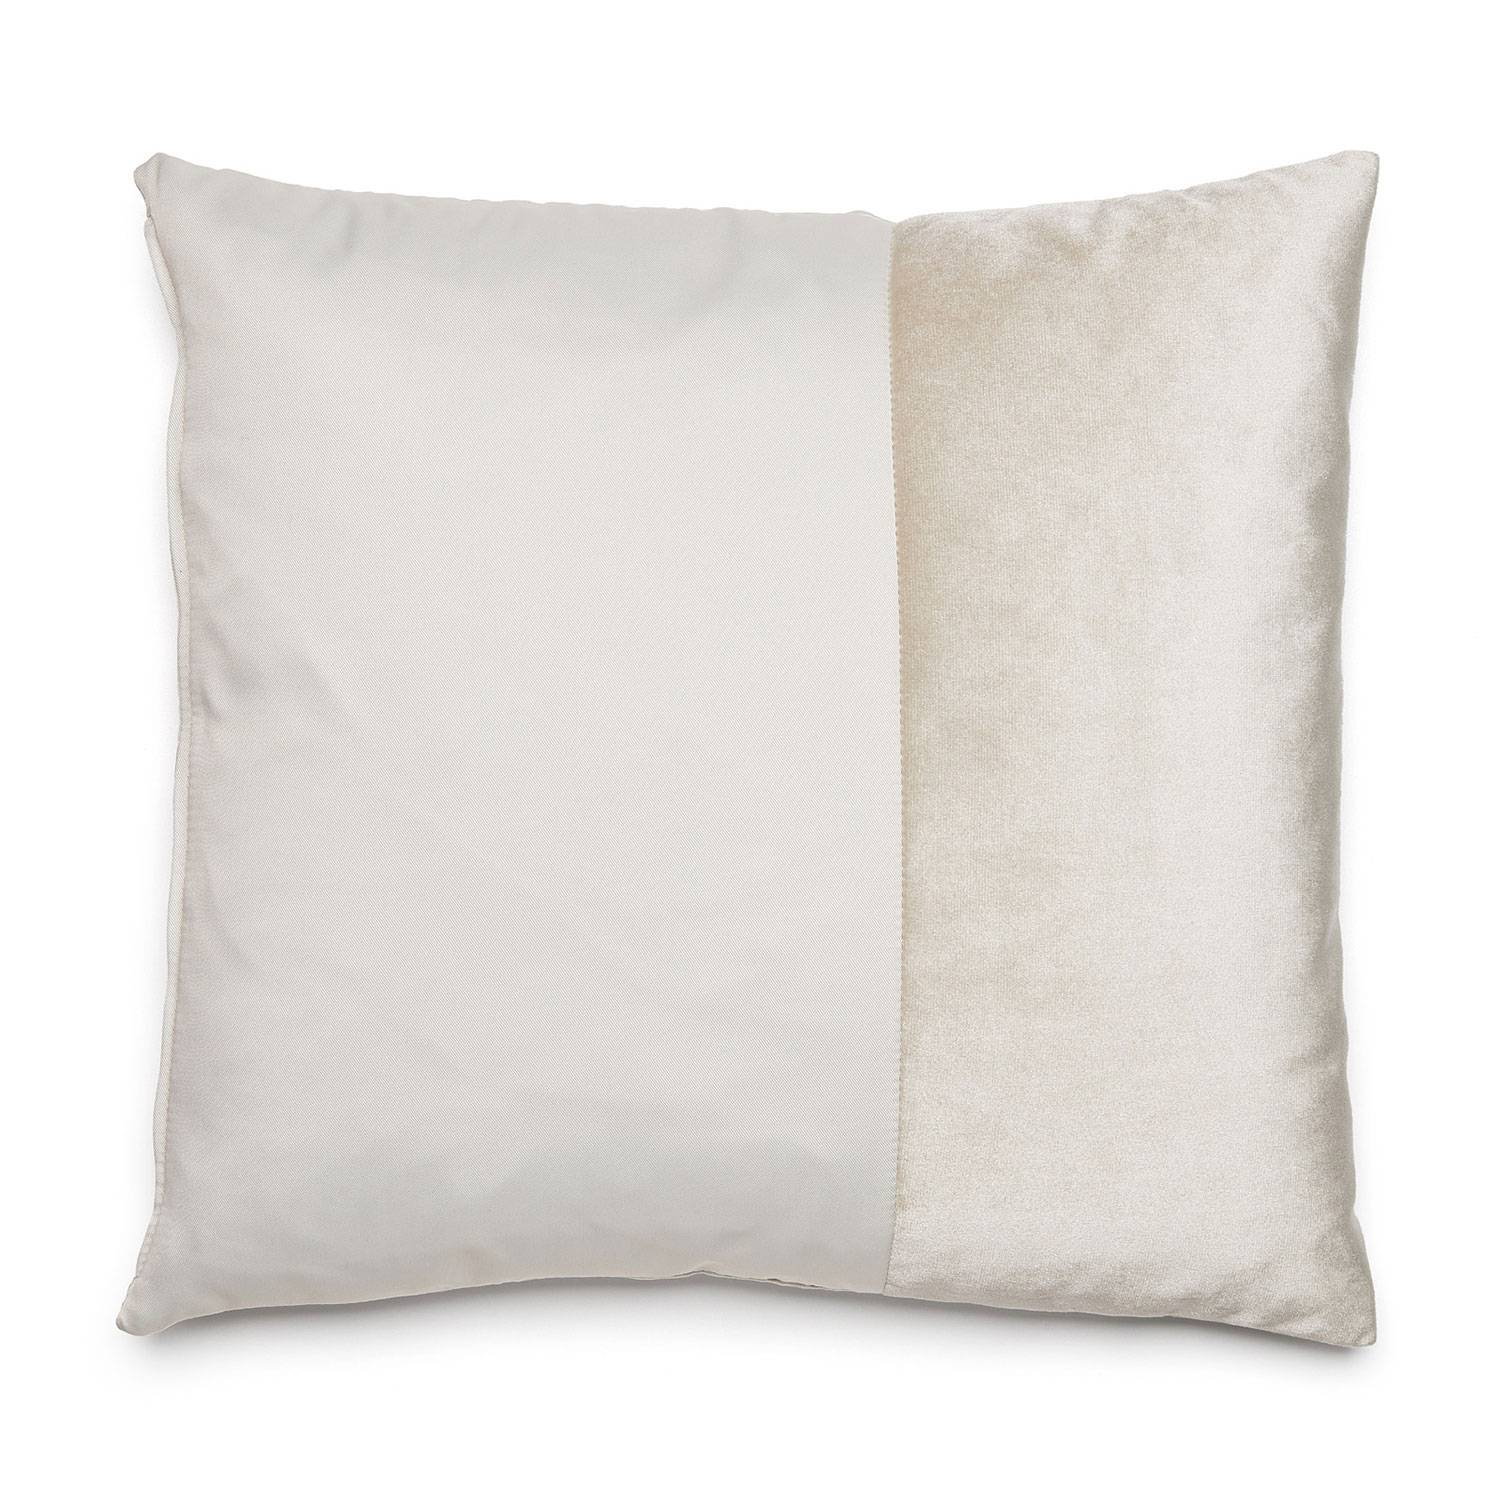 Puik Duo Tyyny 45x45cm, Icicle